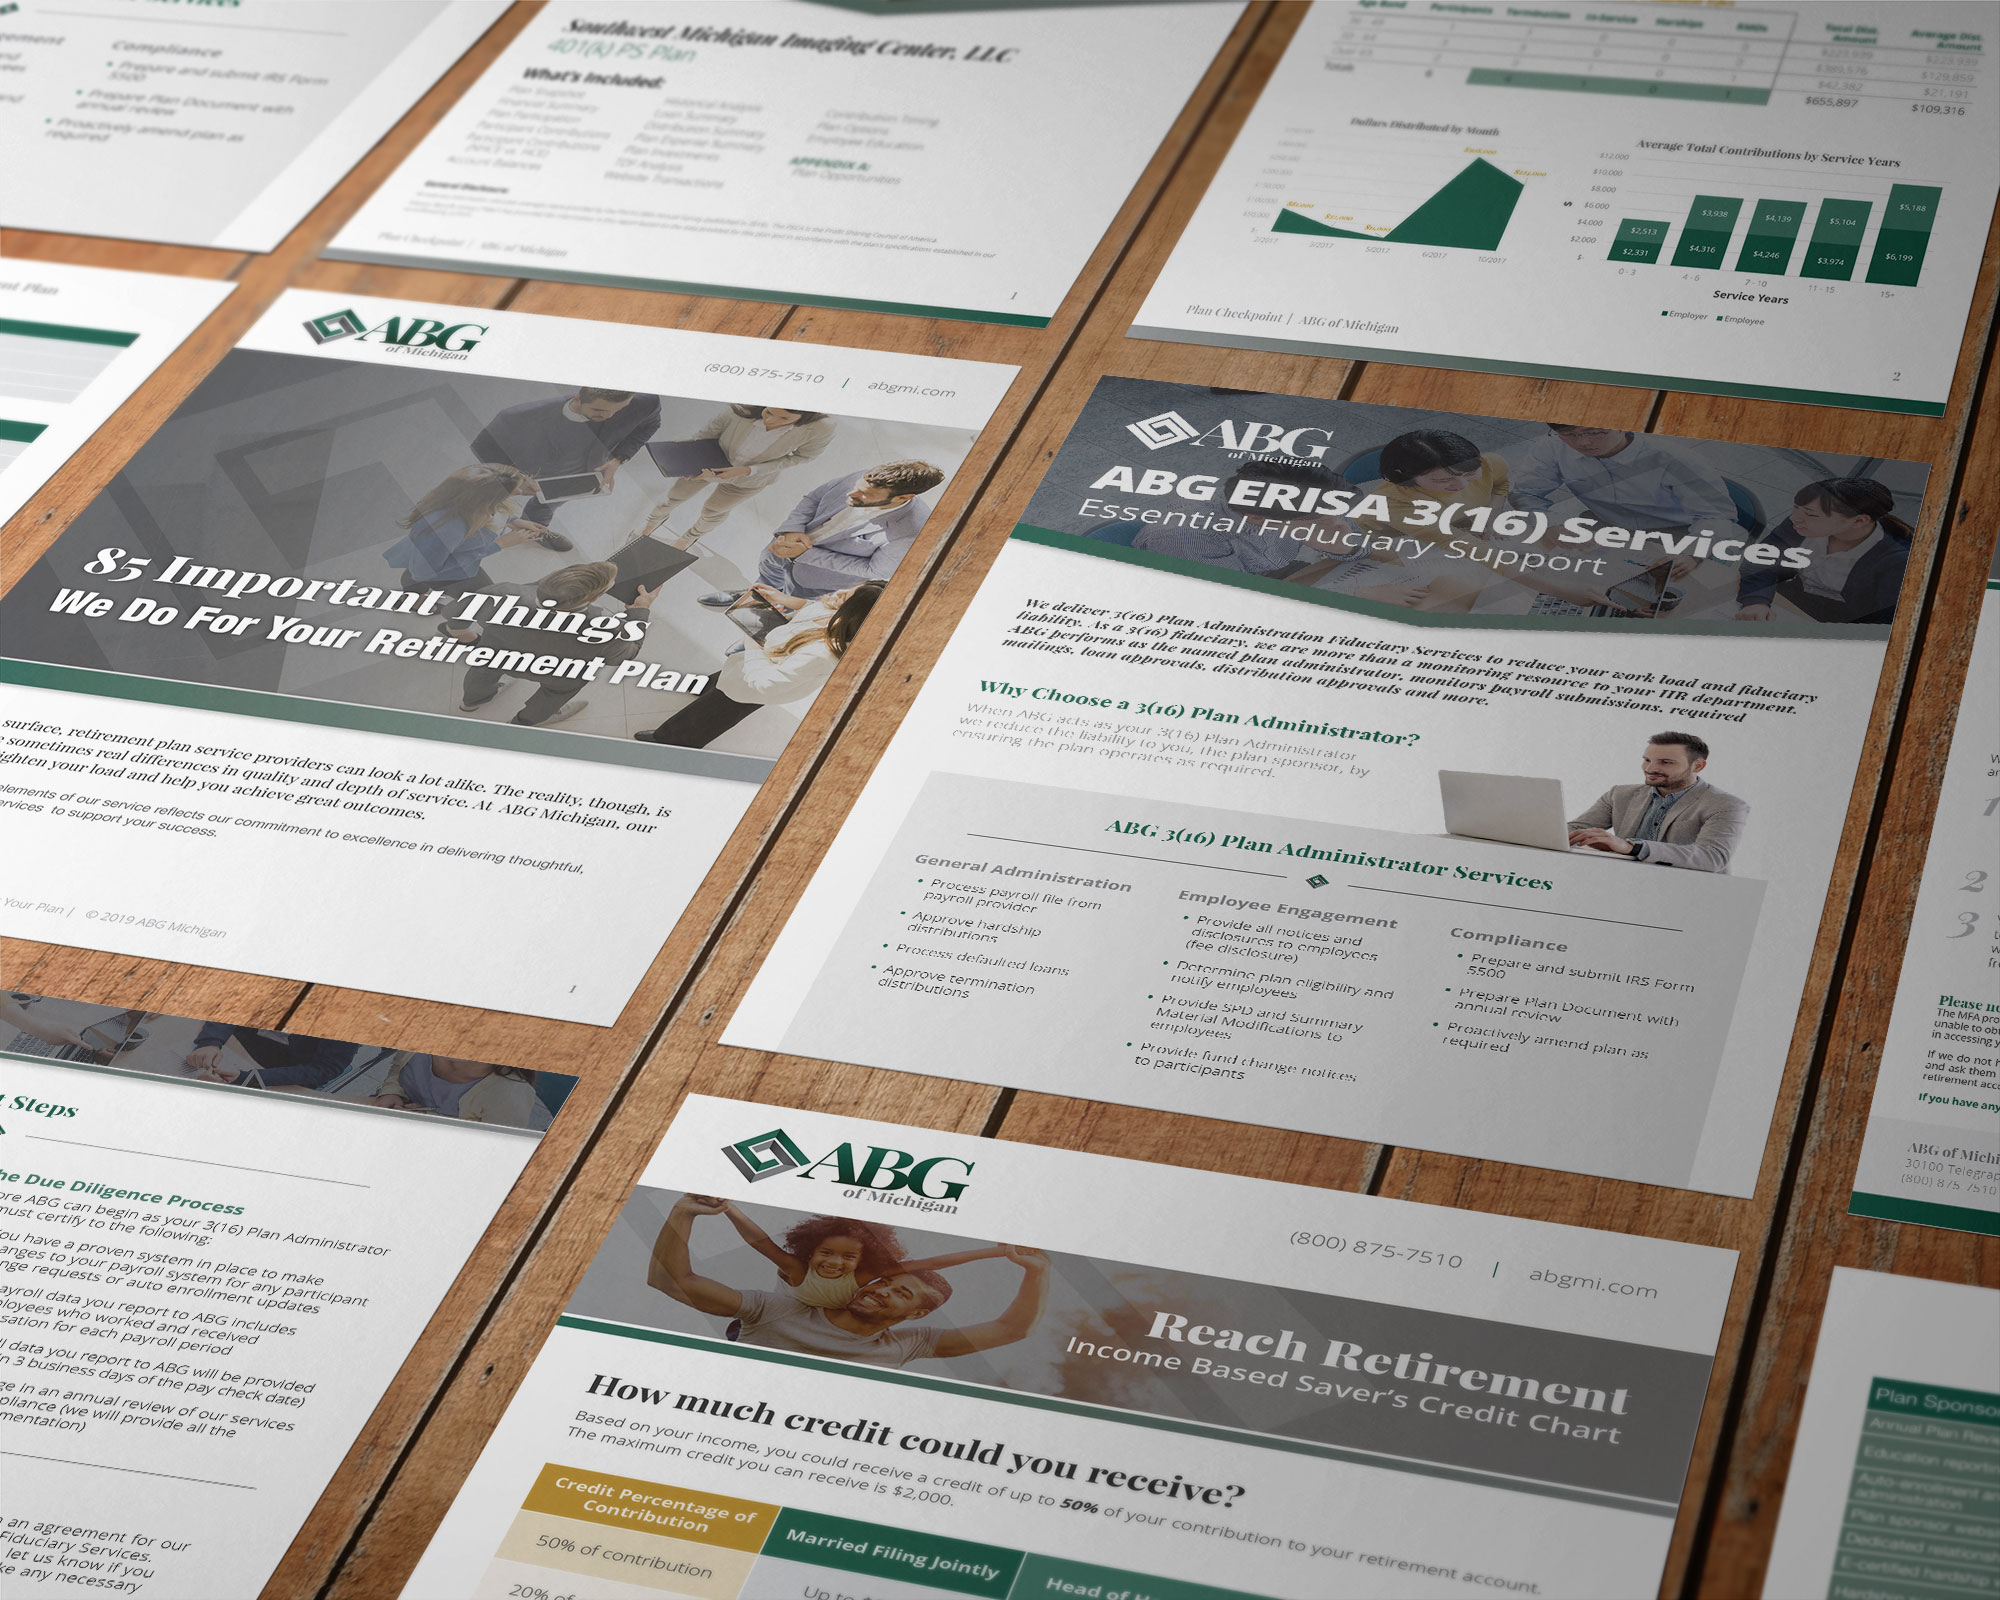 10 different print marketing pages designed for ABG of Michigan, all laid out neatly on a table